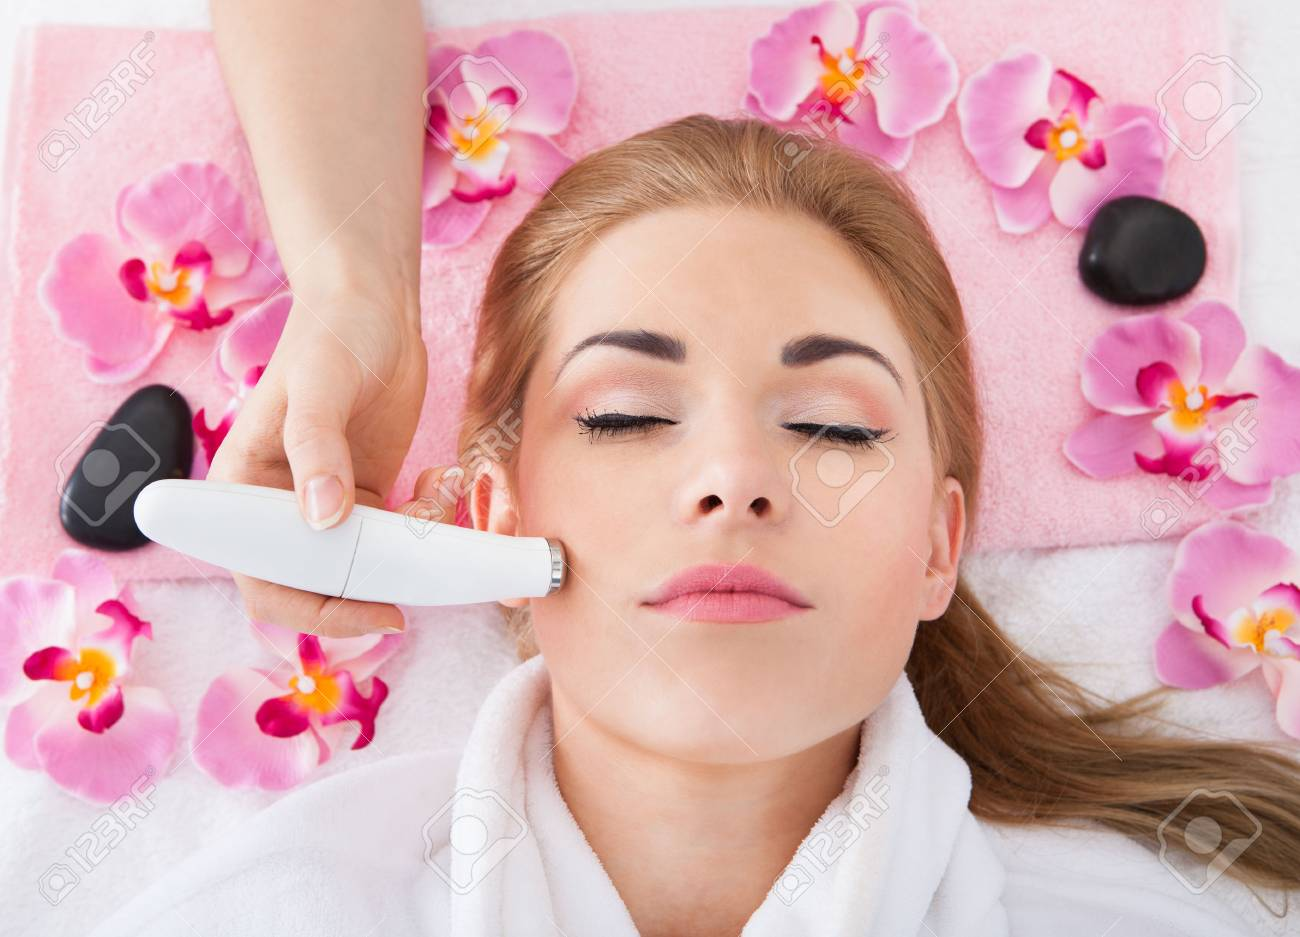 High Angle View Of Woman Getting Microdermabrasion Therapy In Spa Stock Photo - 27242167